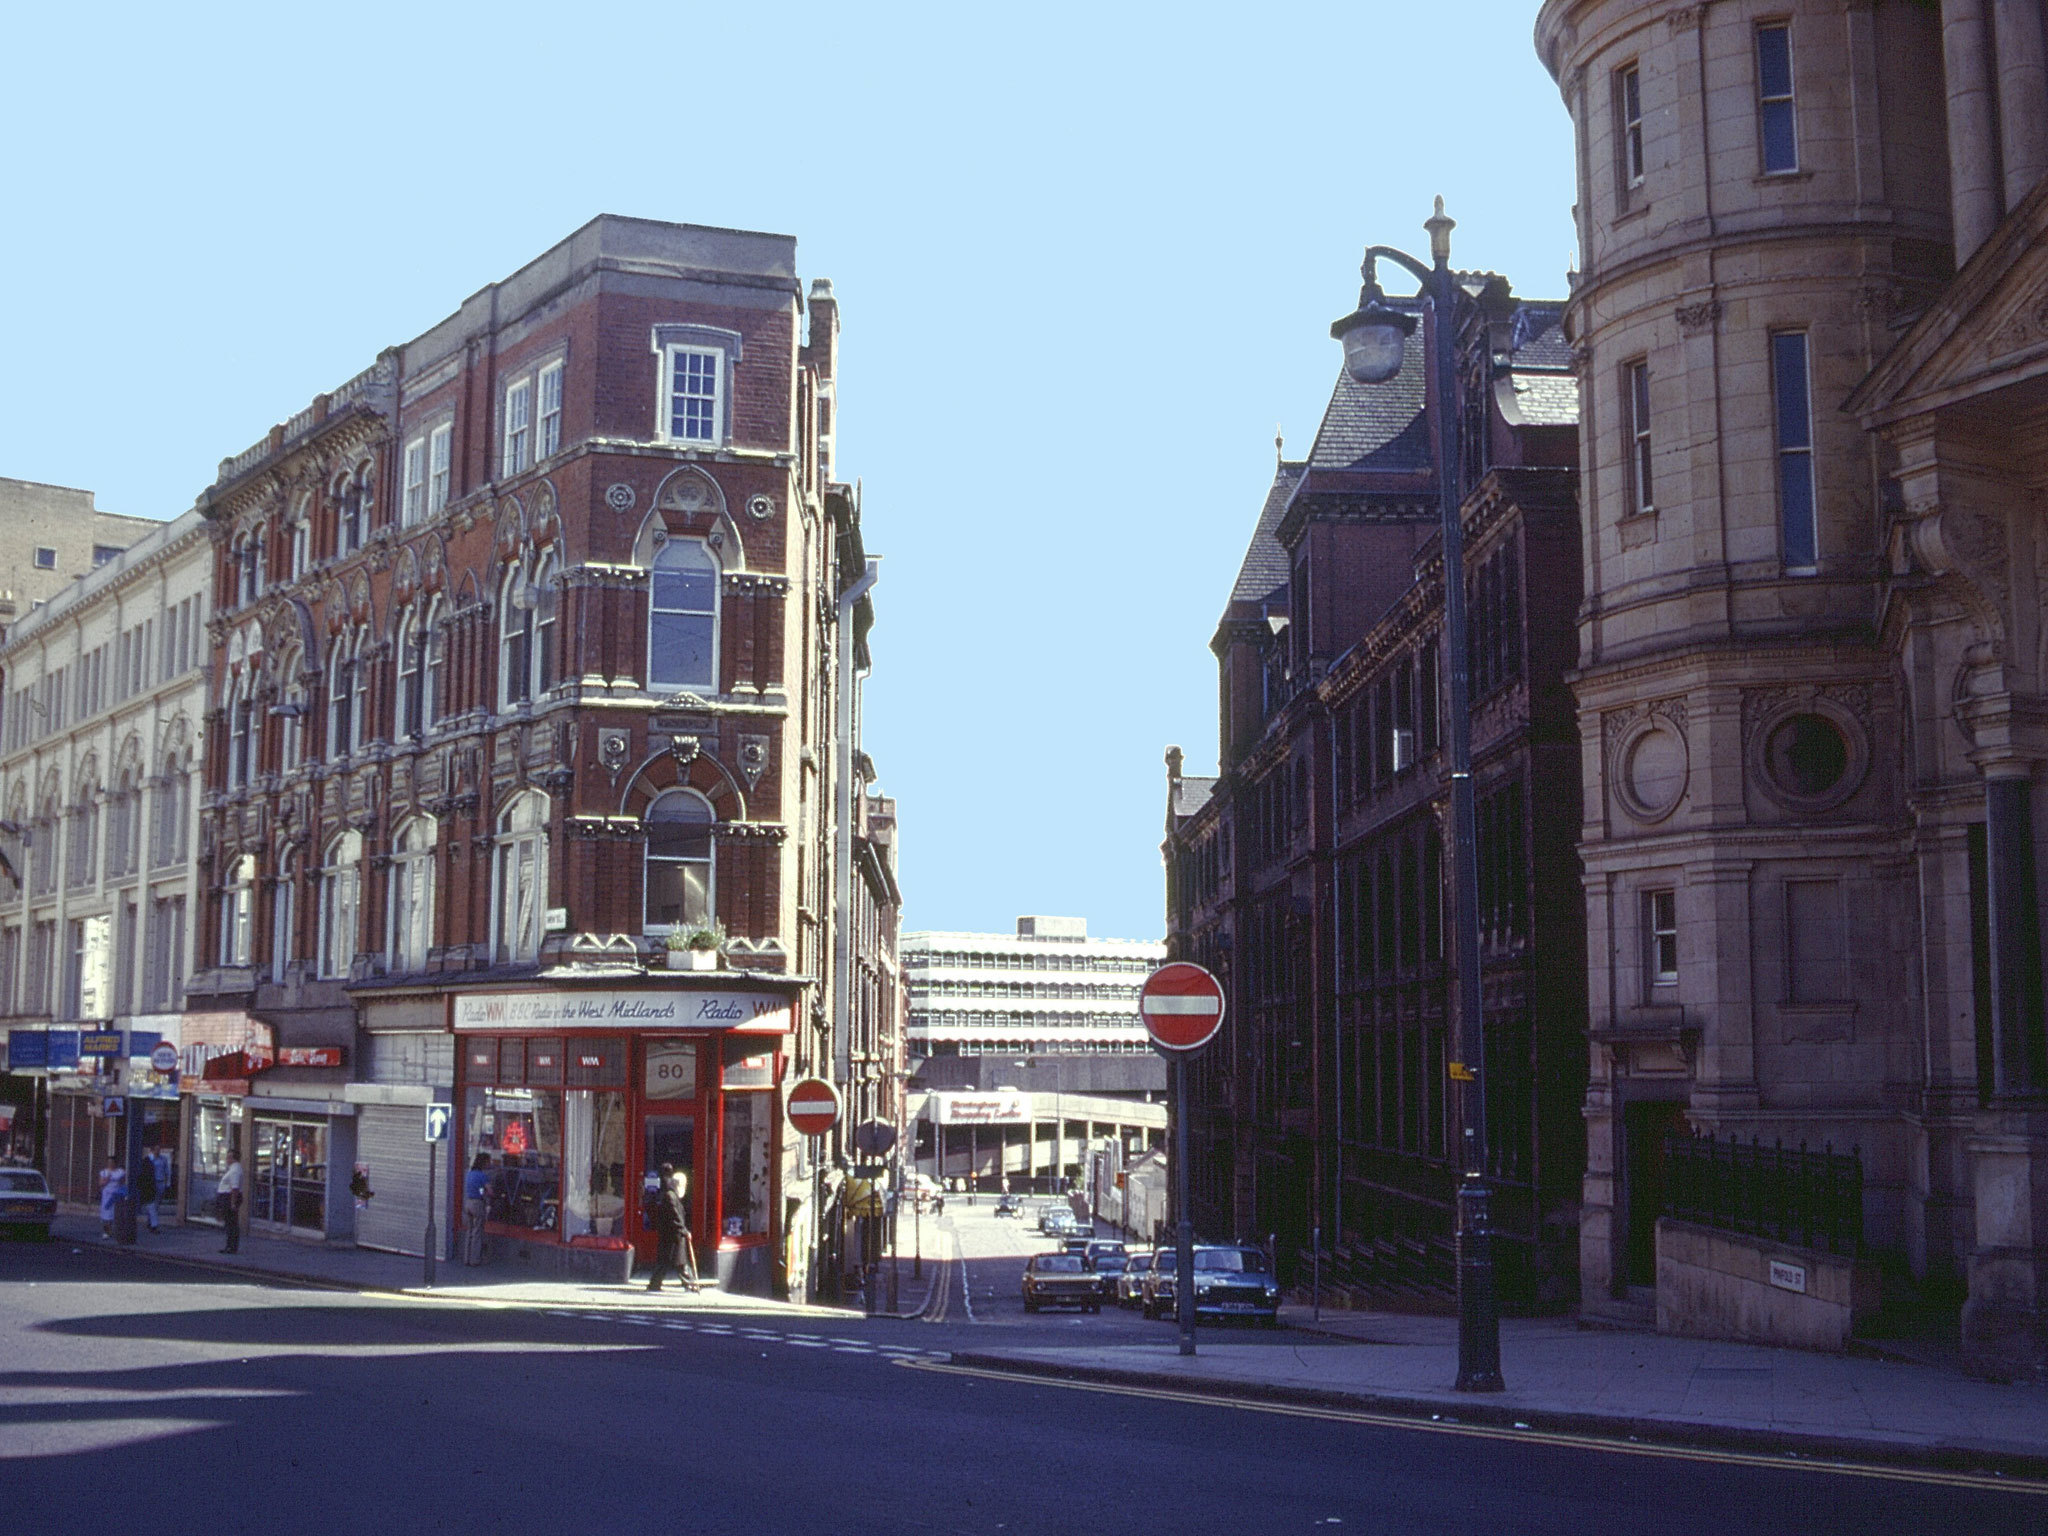 Birmingham in the '80s, Pinfold Street